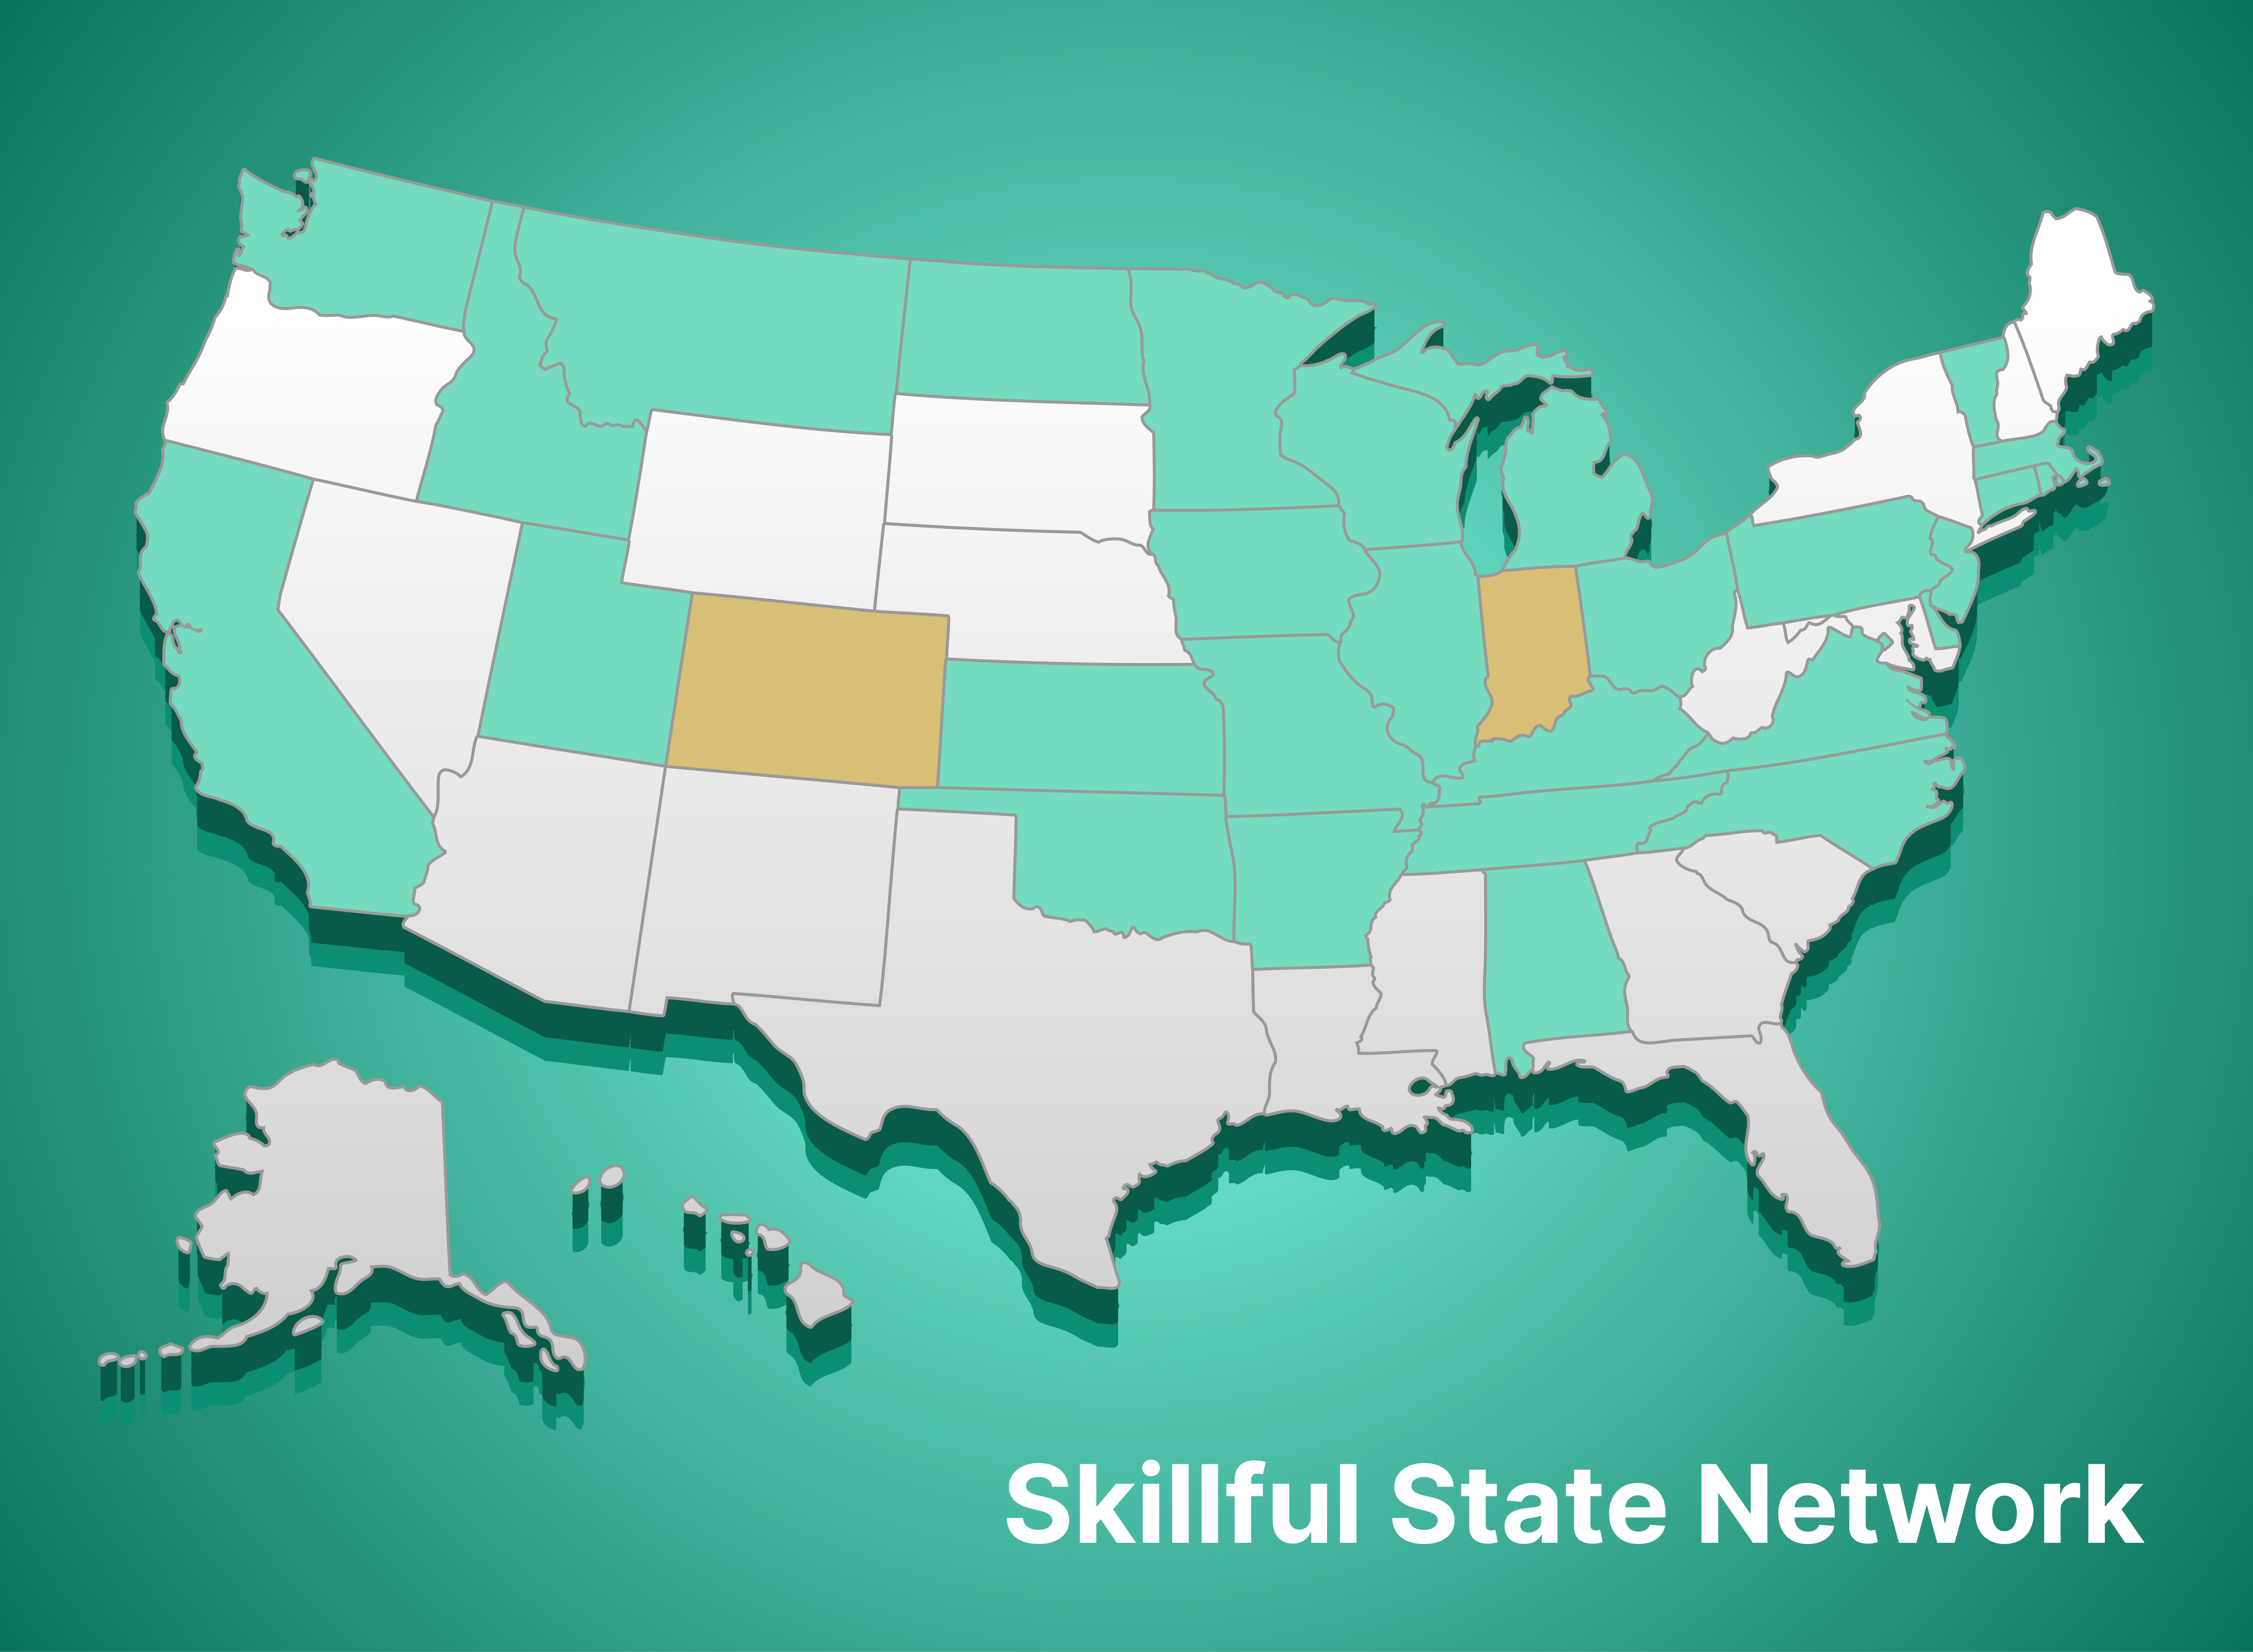 US Map of Skillful State Networks